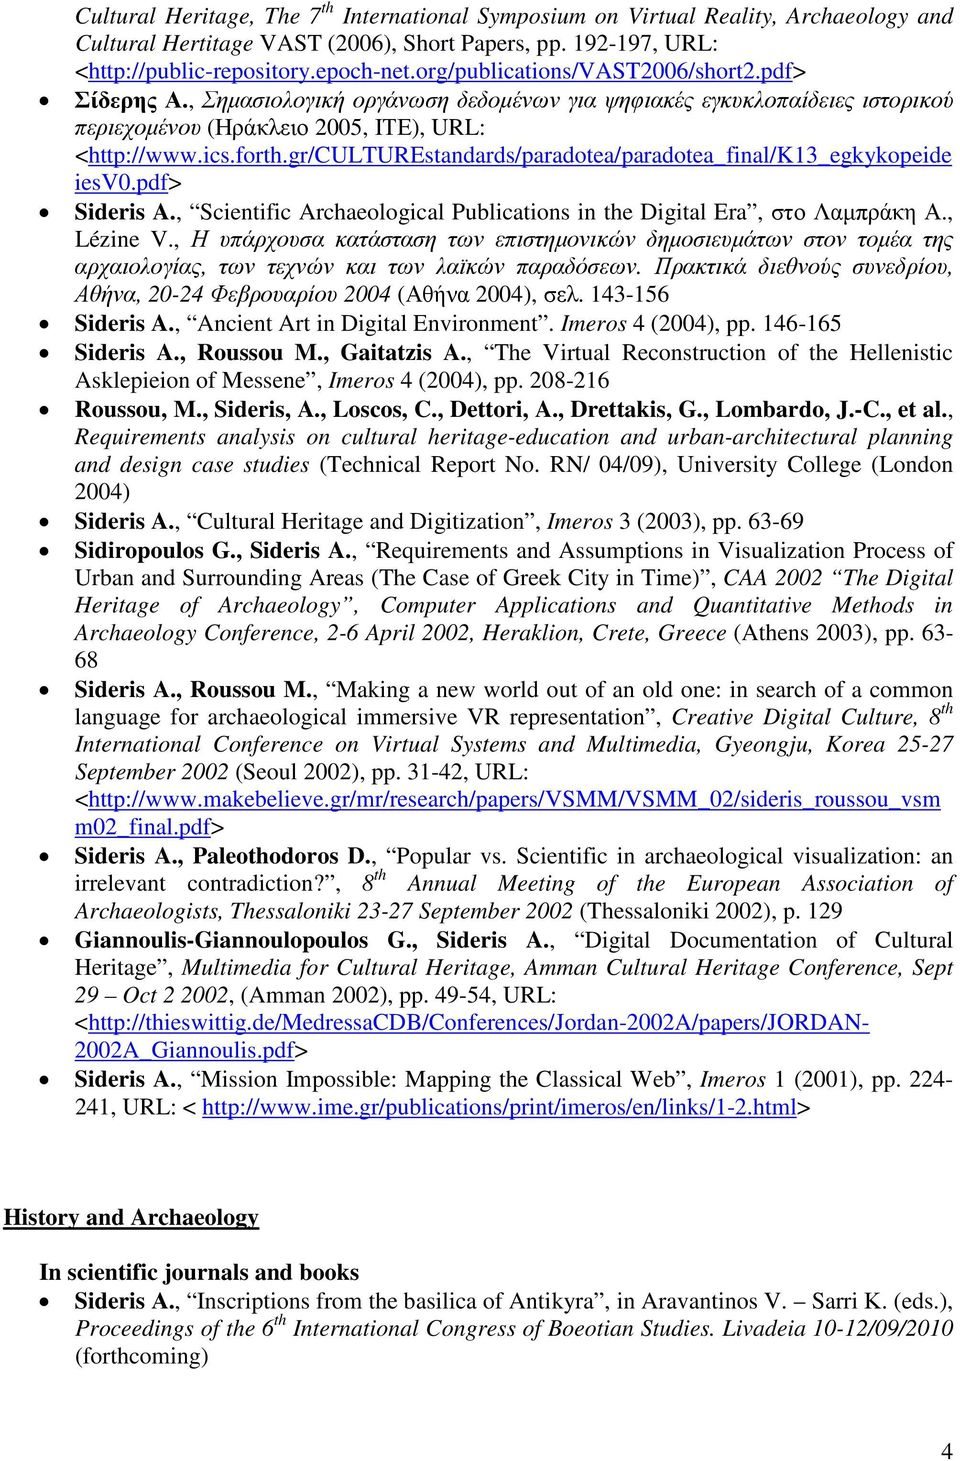 gr/culturestandards/paradotea/paradotea_final/k13_egkykopeide iesv0.pdf> Sideris A., Scientific Archaeological Publications in the Digital Era, στο Λαµπράκη Α., Lézine V.